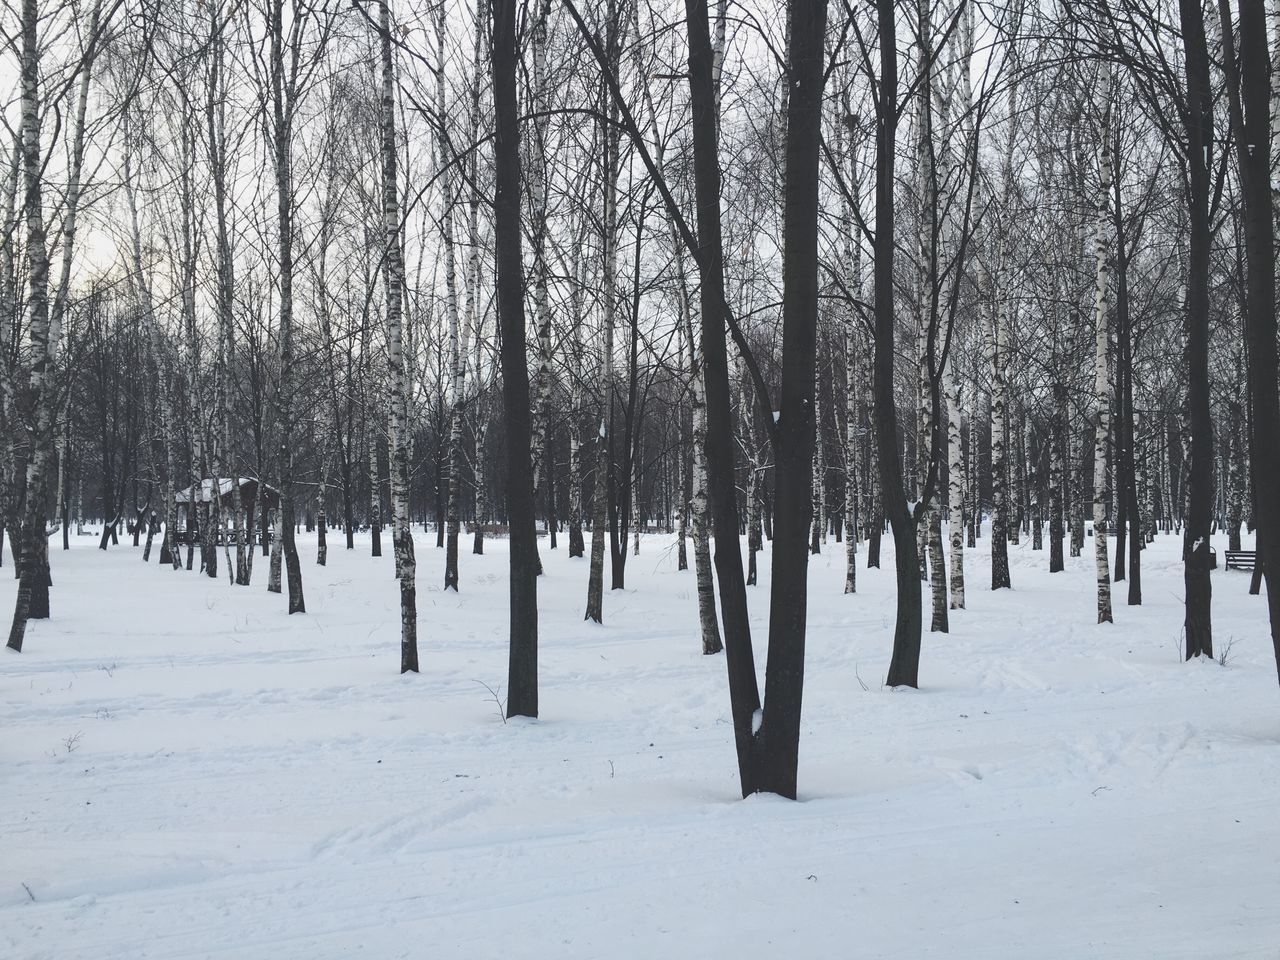 Winter Snow Cold Temperature Tree Bare Tree Nature Scenics Tranquility Day Beauty In Nature Landscape Tranquil Scene No People Outdoors Branch Parks Yauza Moscow Russia 🇷🇺